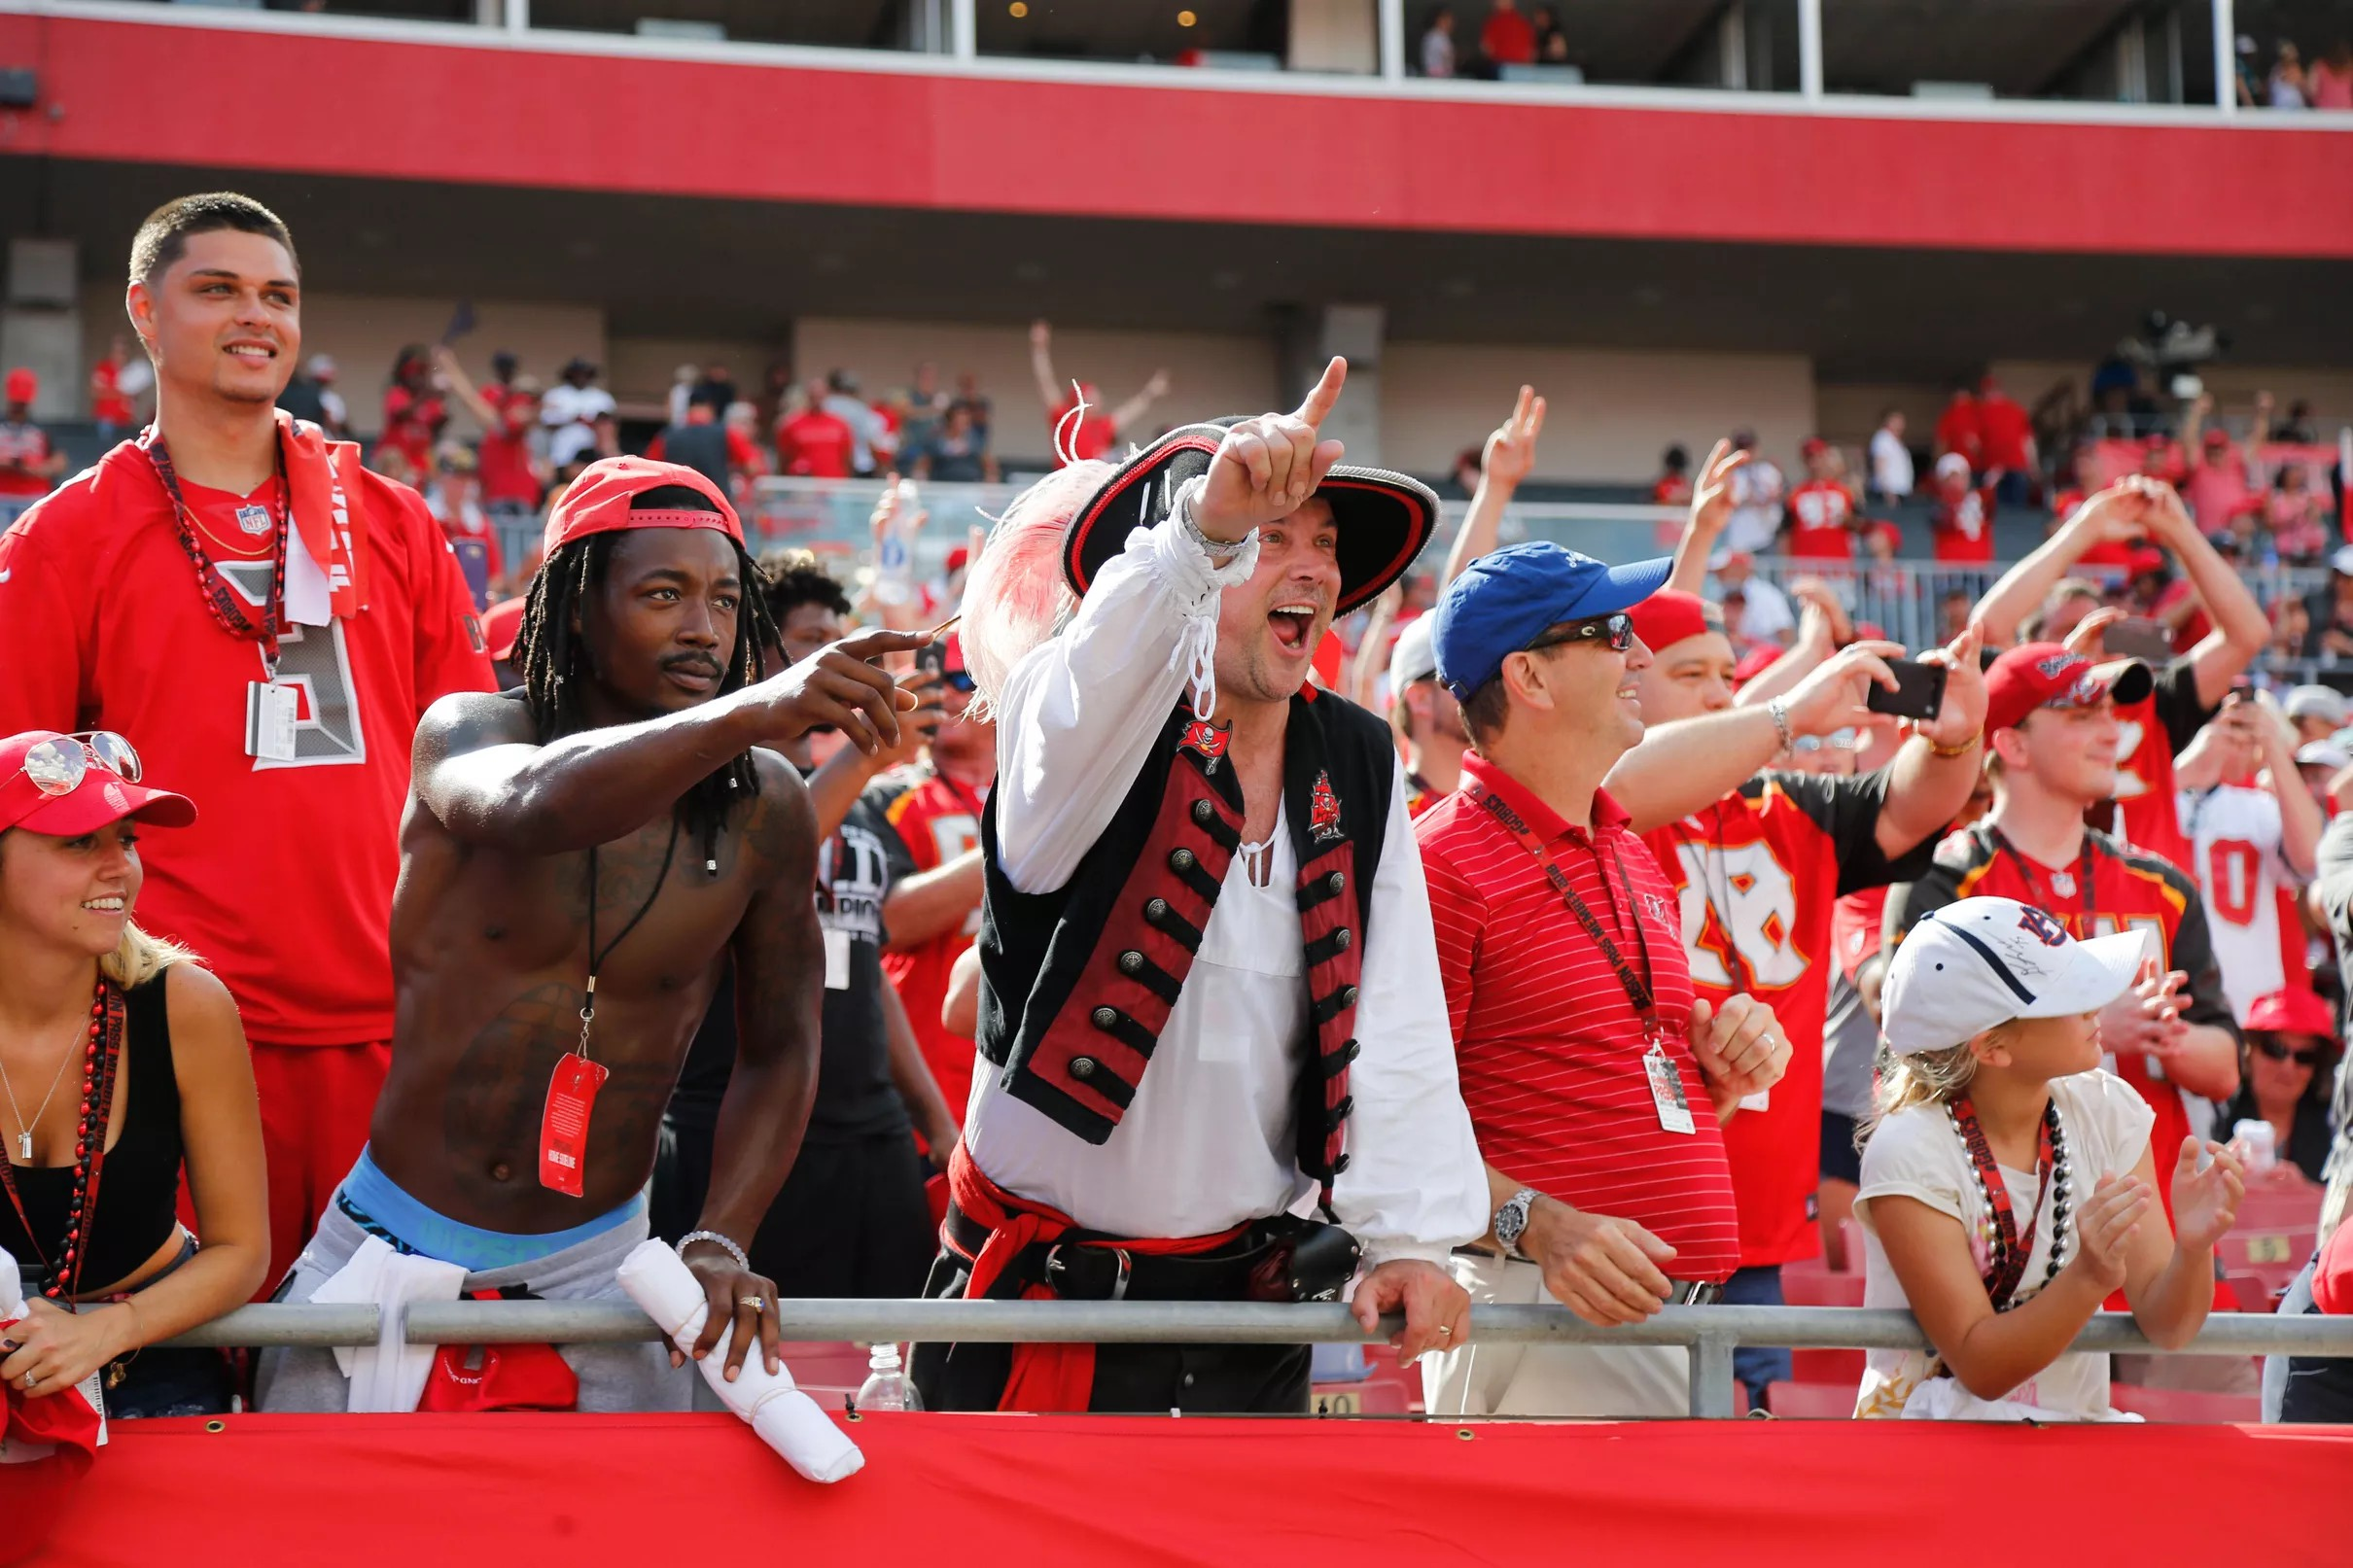 Bucs fans riding a wave of confidence heading into Week 3 3f1ddaec7